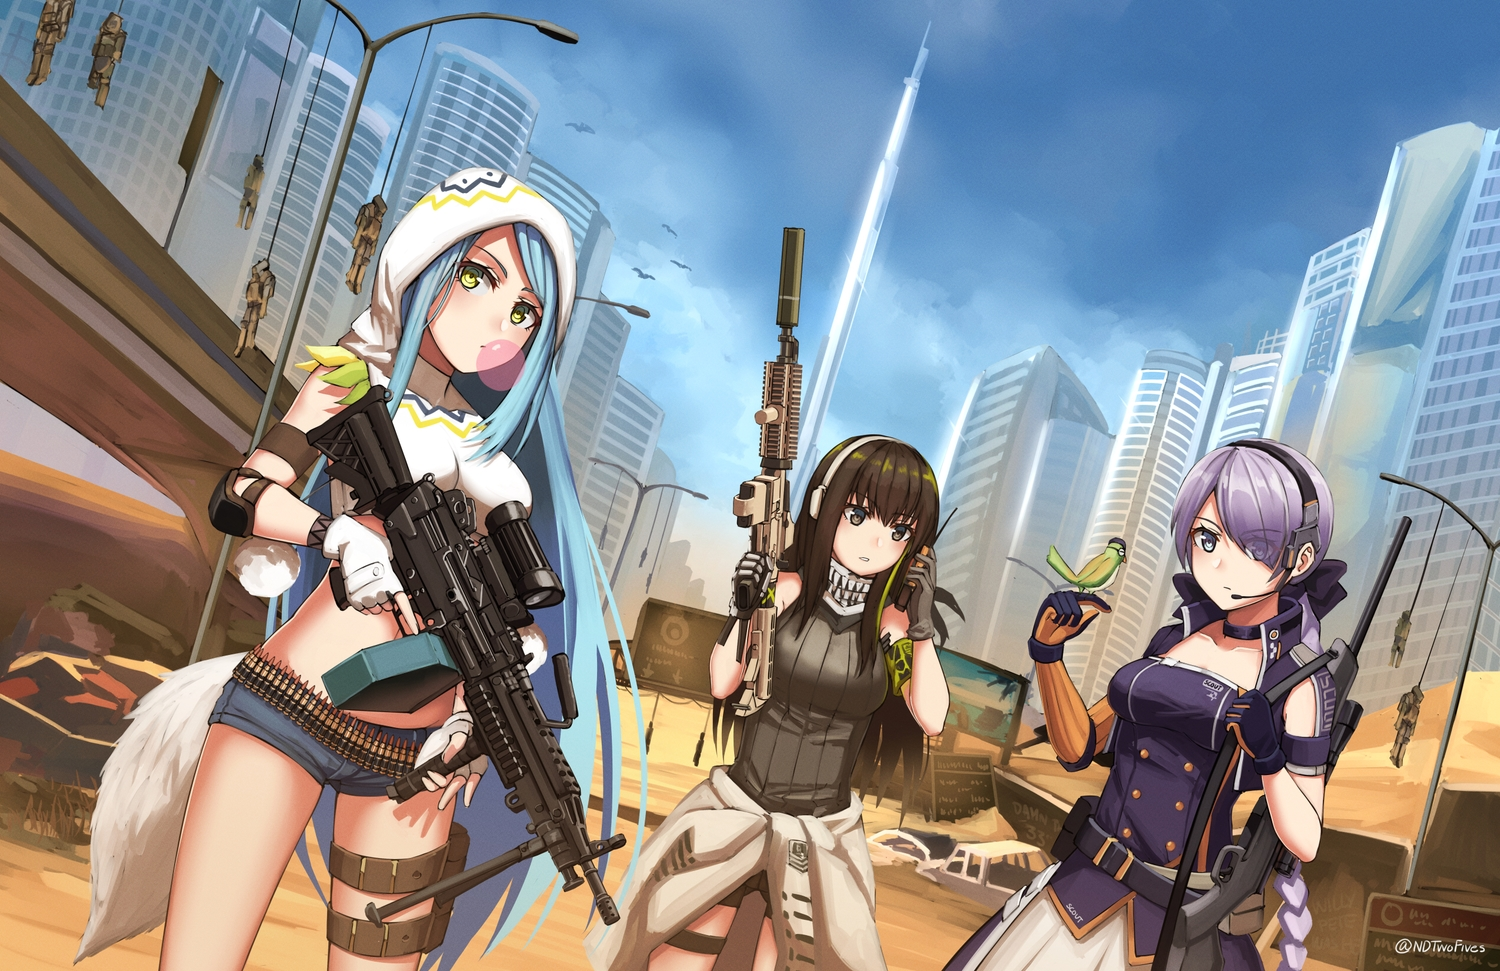 animal anthropomorphism aqua_hair bird breasts brown_eyes brown_hair building city desert girls_frontline gray_eyes gray_hair green_eyes gun long_hair m249_saw_(girls_frontline) m4a1_(girls_frontline) ndtwofives ponytail robot shorts signed sky steyr_scout_(girls_frontline) tail uniform weapon